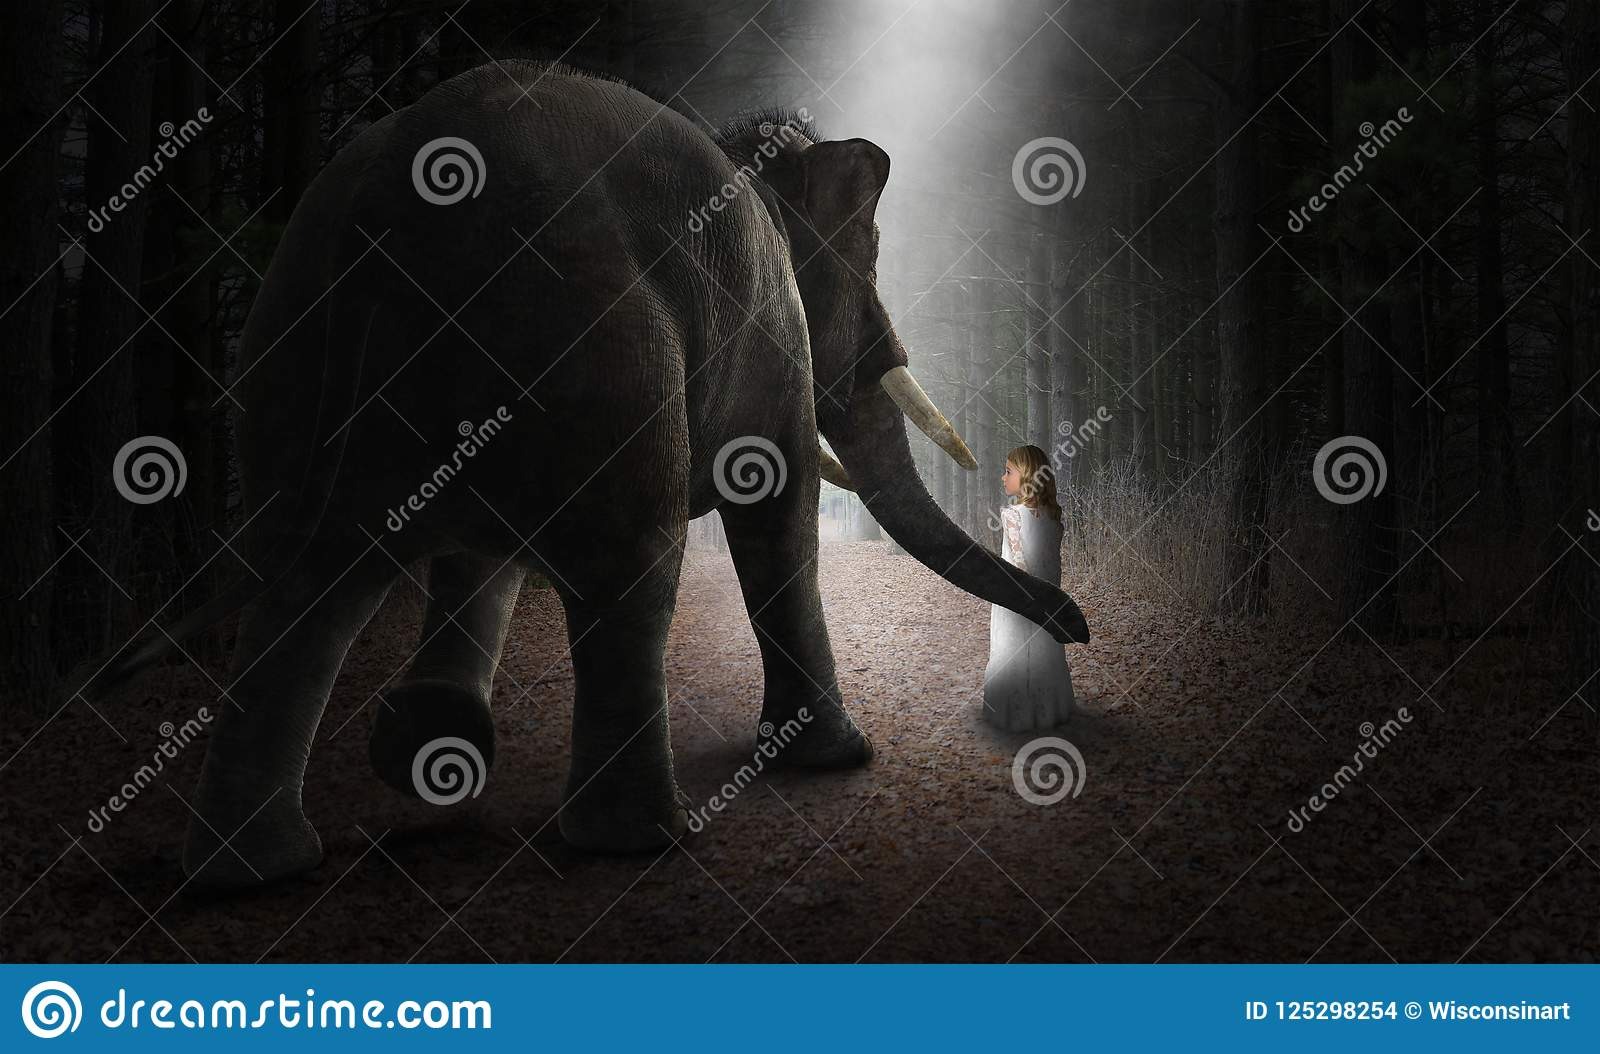 Surreal Elephant, Girl, Friends, Love, Nature